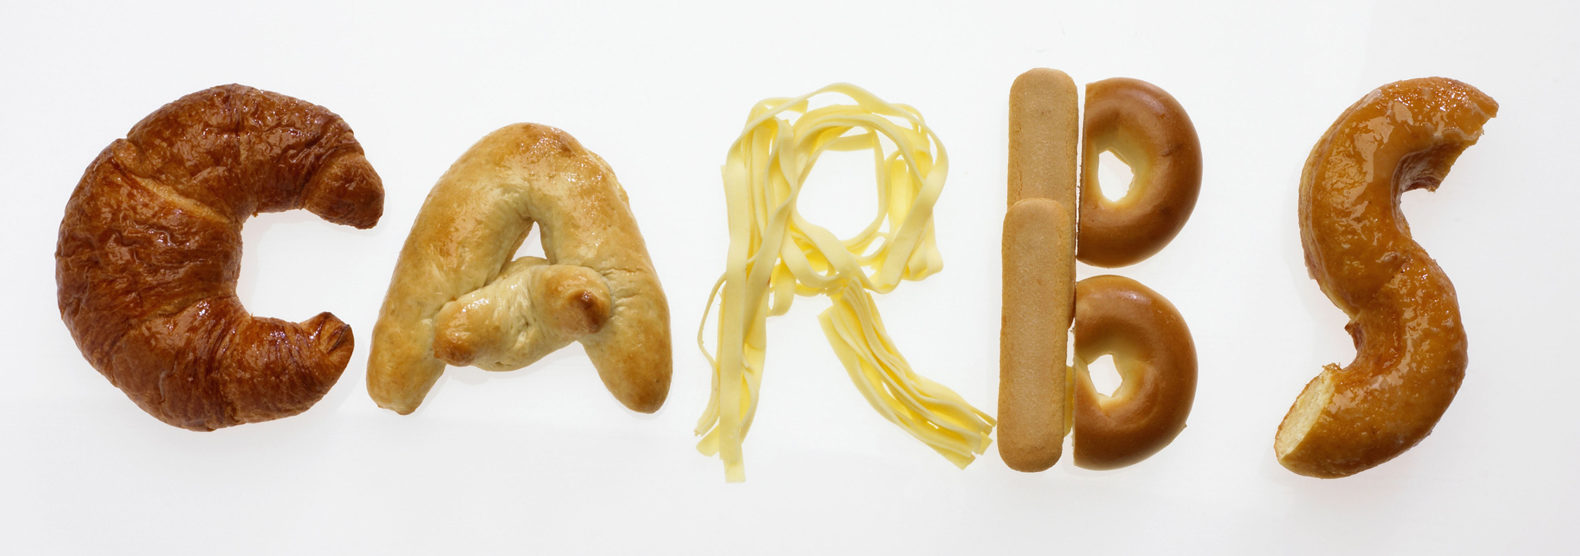 5 Myths About Carbs you Should Stop Believing